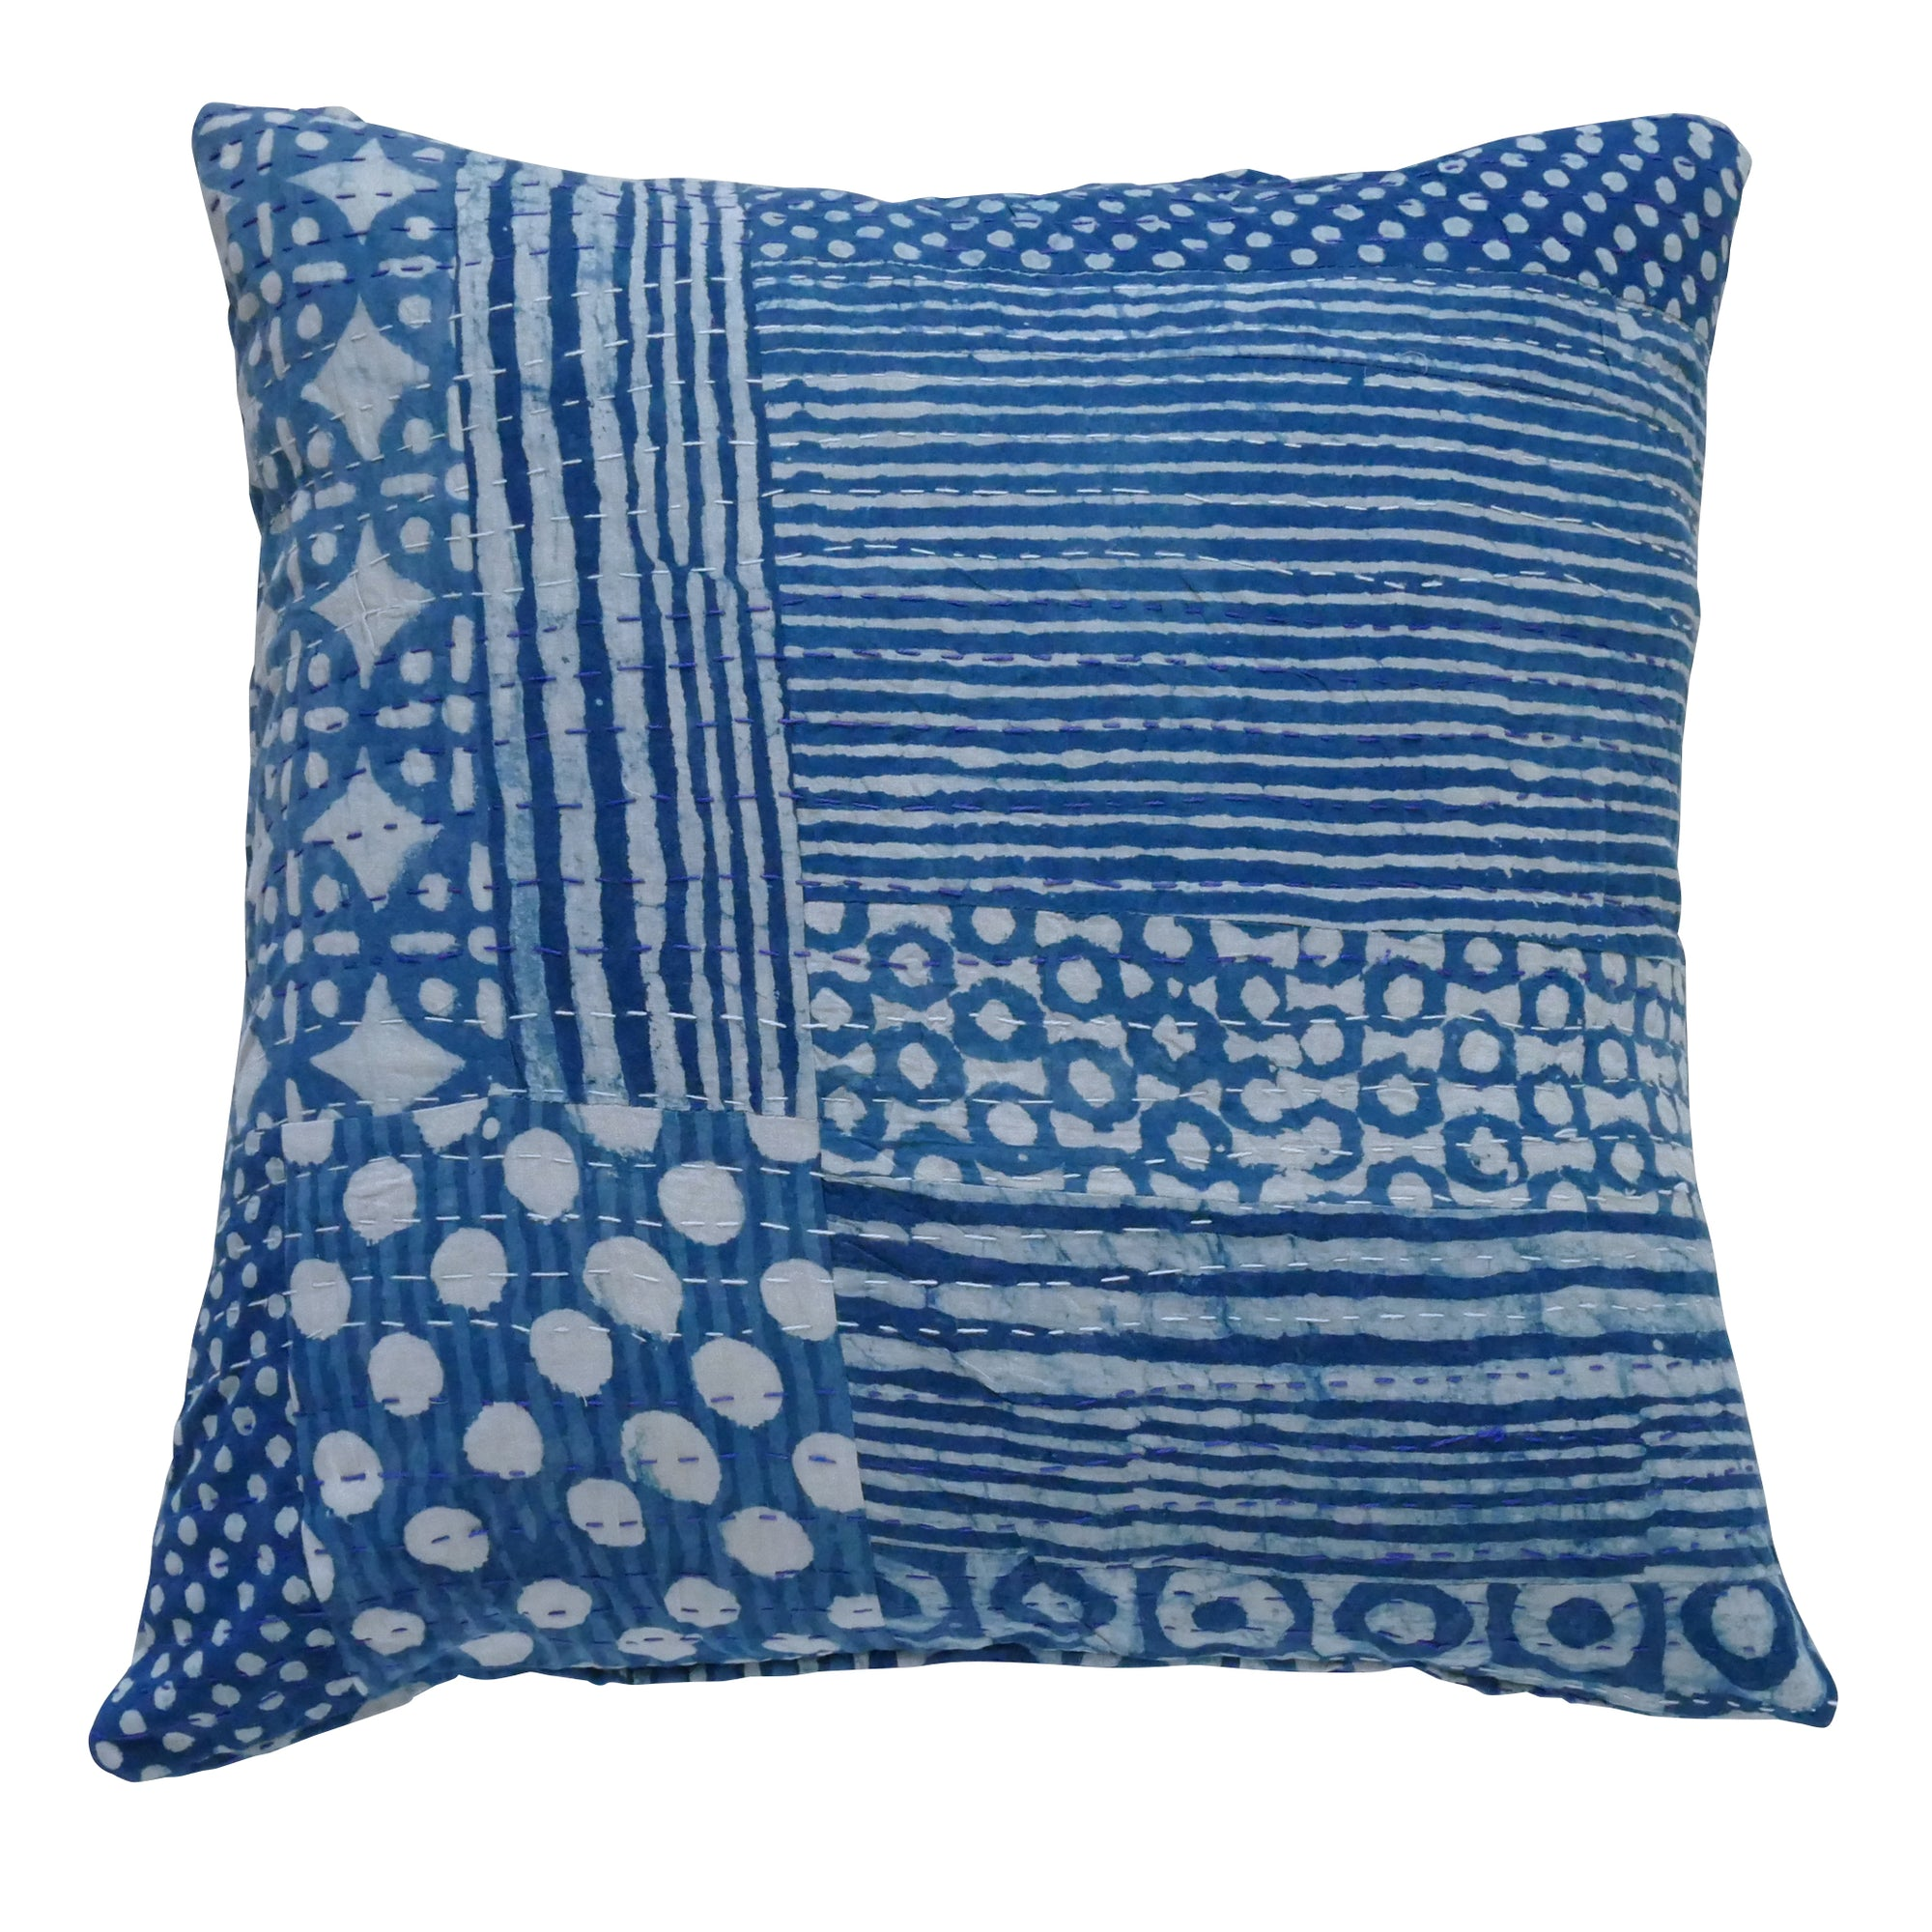 Blue Circle cushion